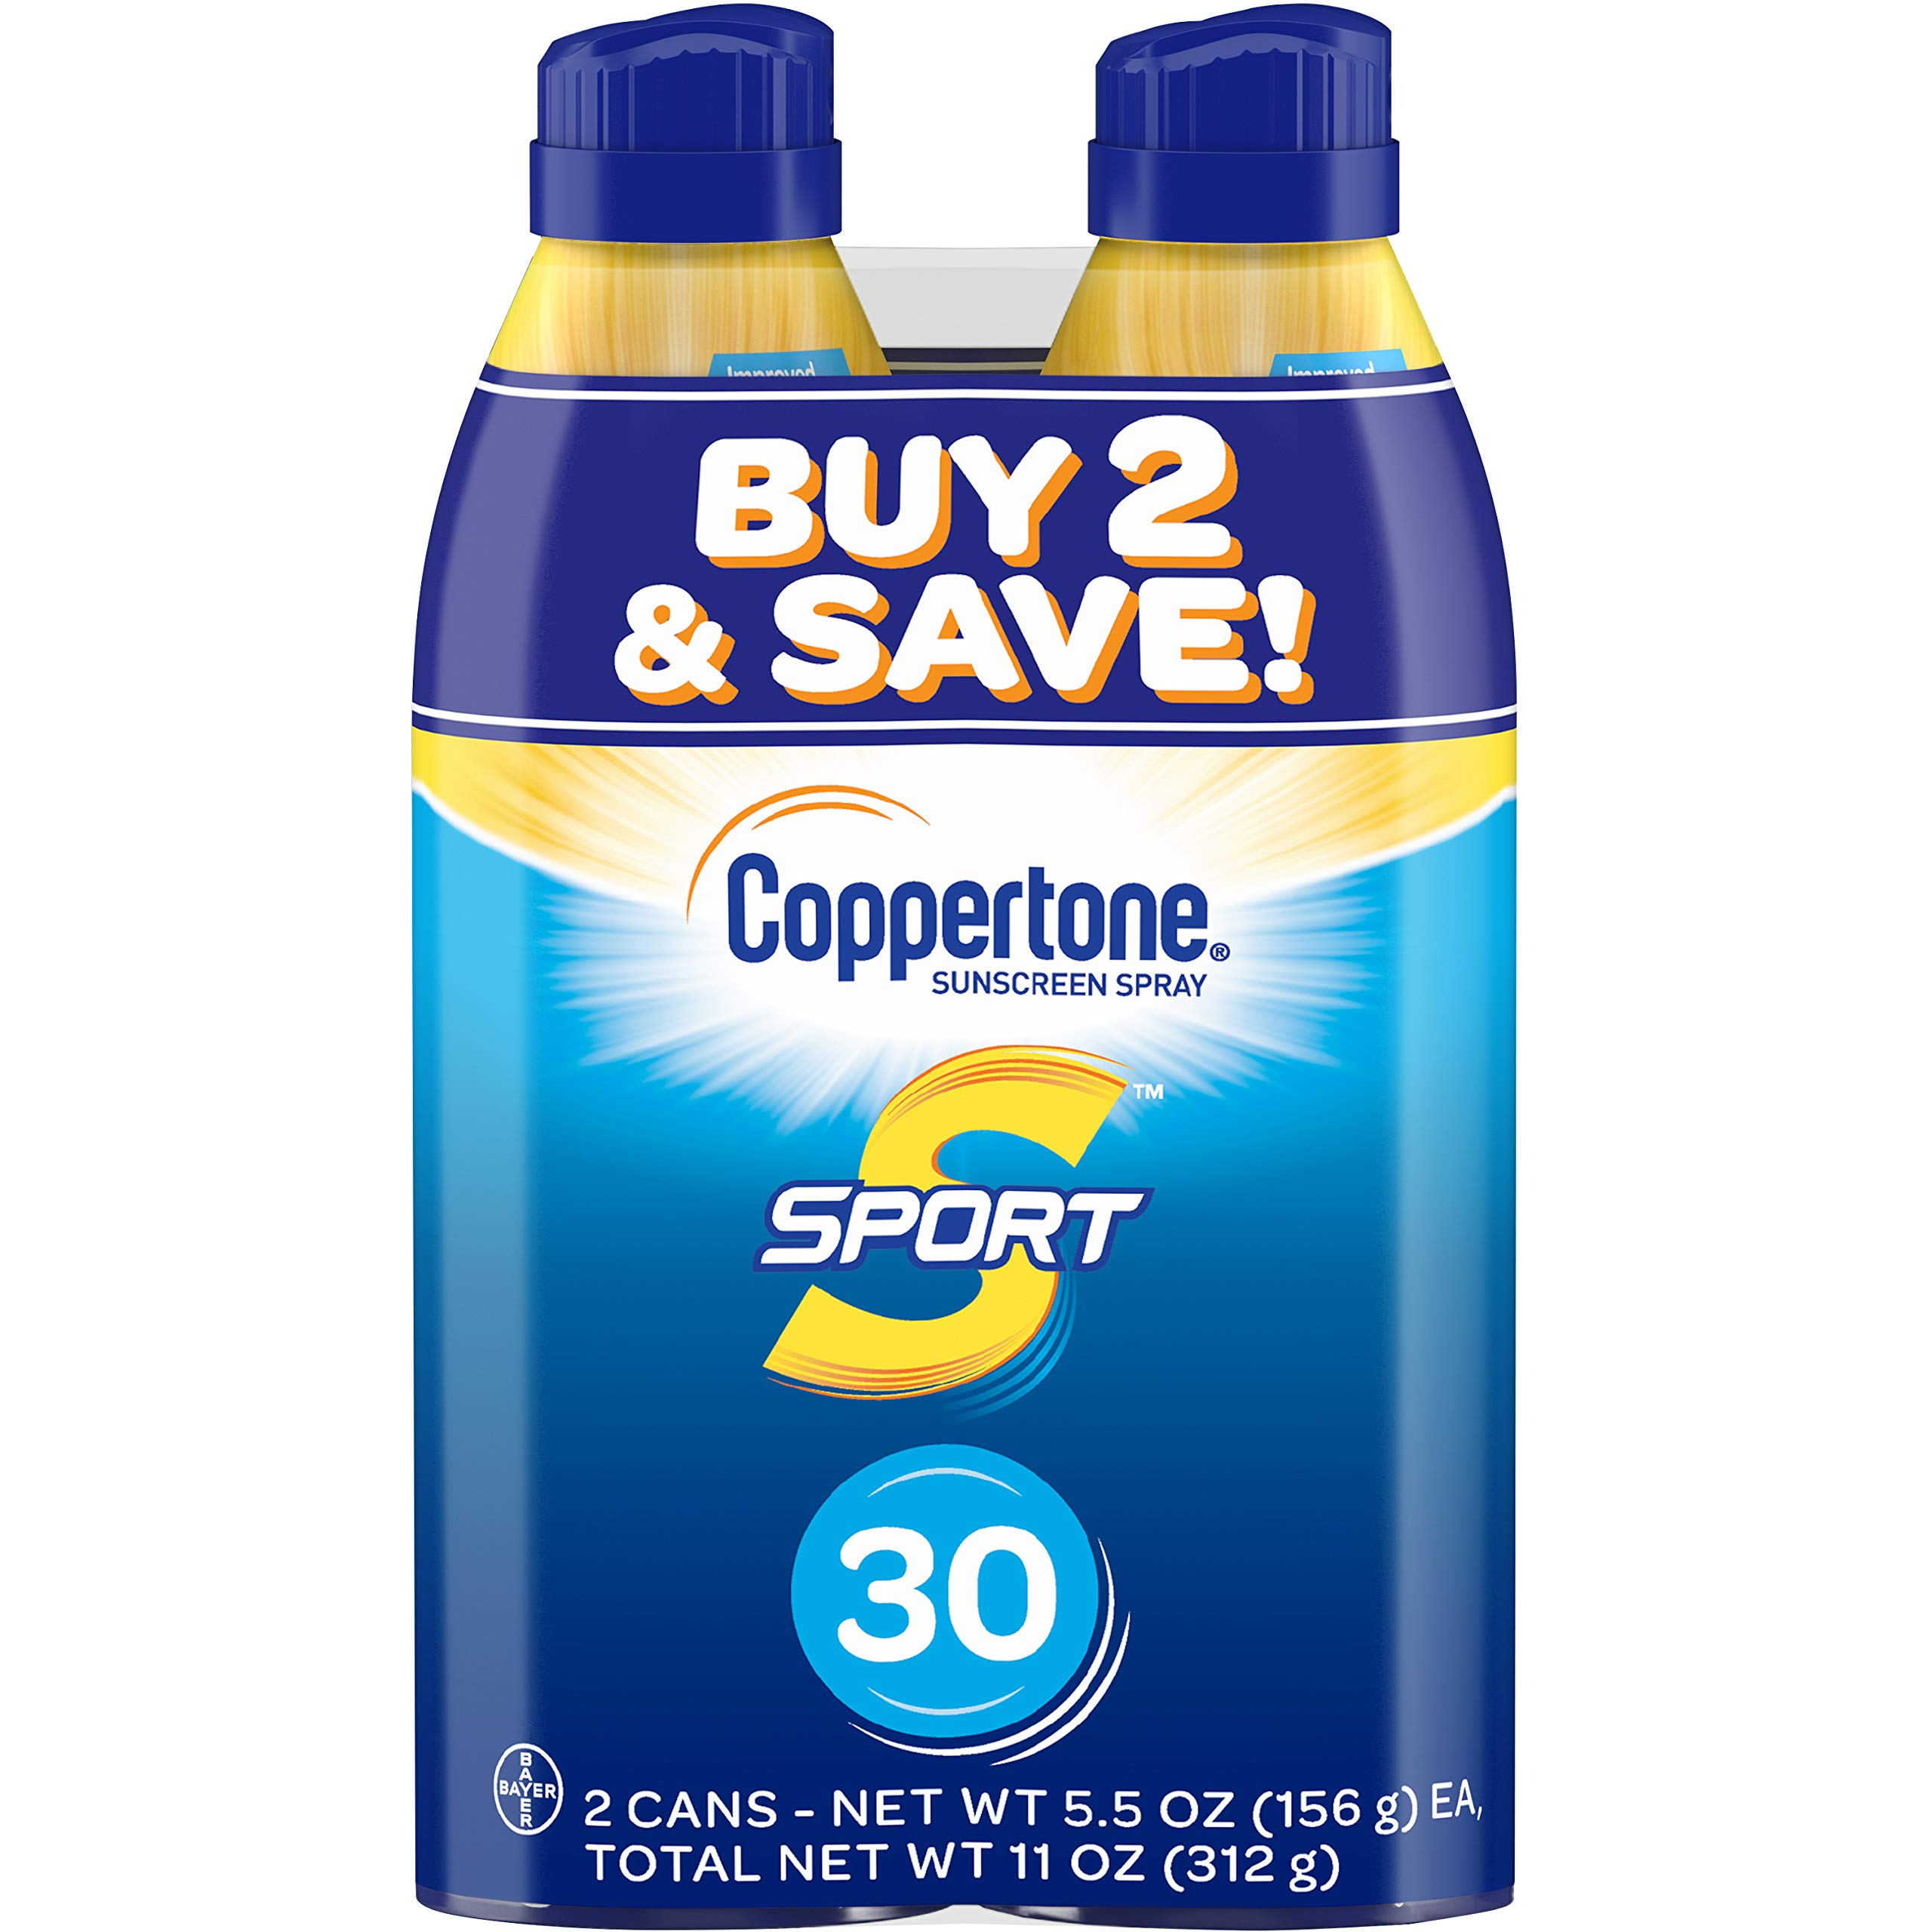 Coppertone SPORT Continuous Sunscreen Spray Broad Spectrum SPF 30 (5.5 Ounce per Bottle, Pack of 2) (Packaging may vary) by Coppertone